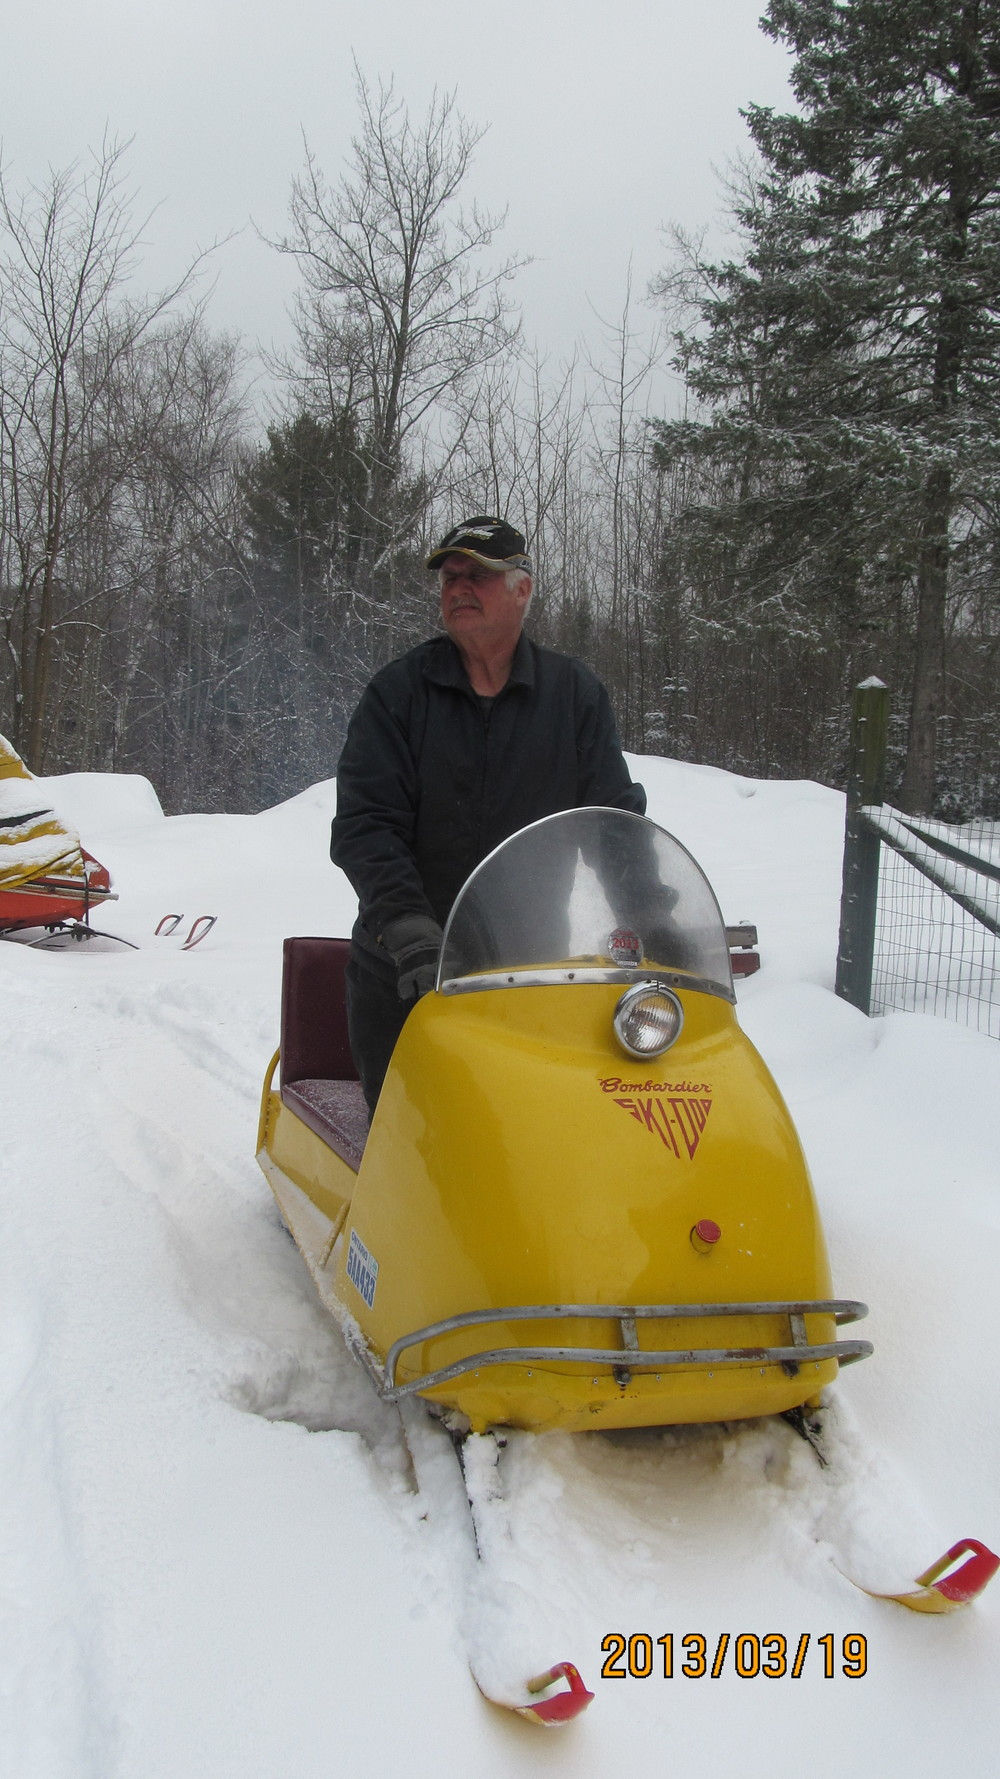 Switzer gets plenty of looks when he rides one of his old sleds into town, and he has participated in a number of community events in the North Hastings region. Photo courtesy Conrad Switzer